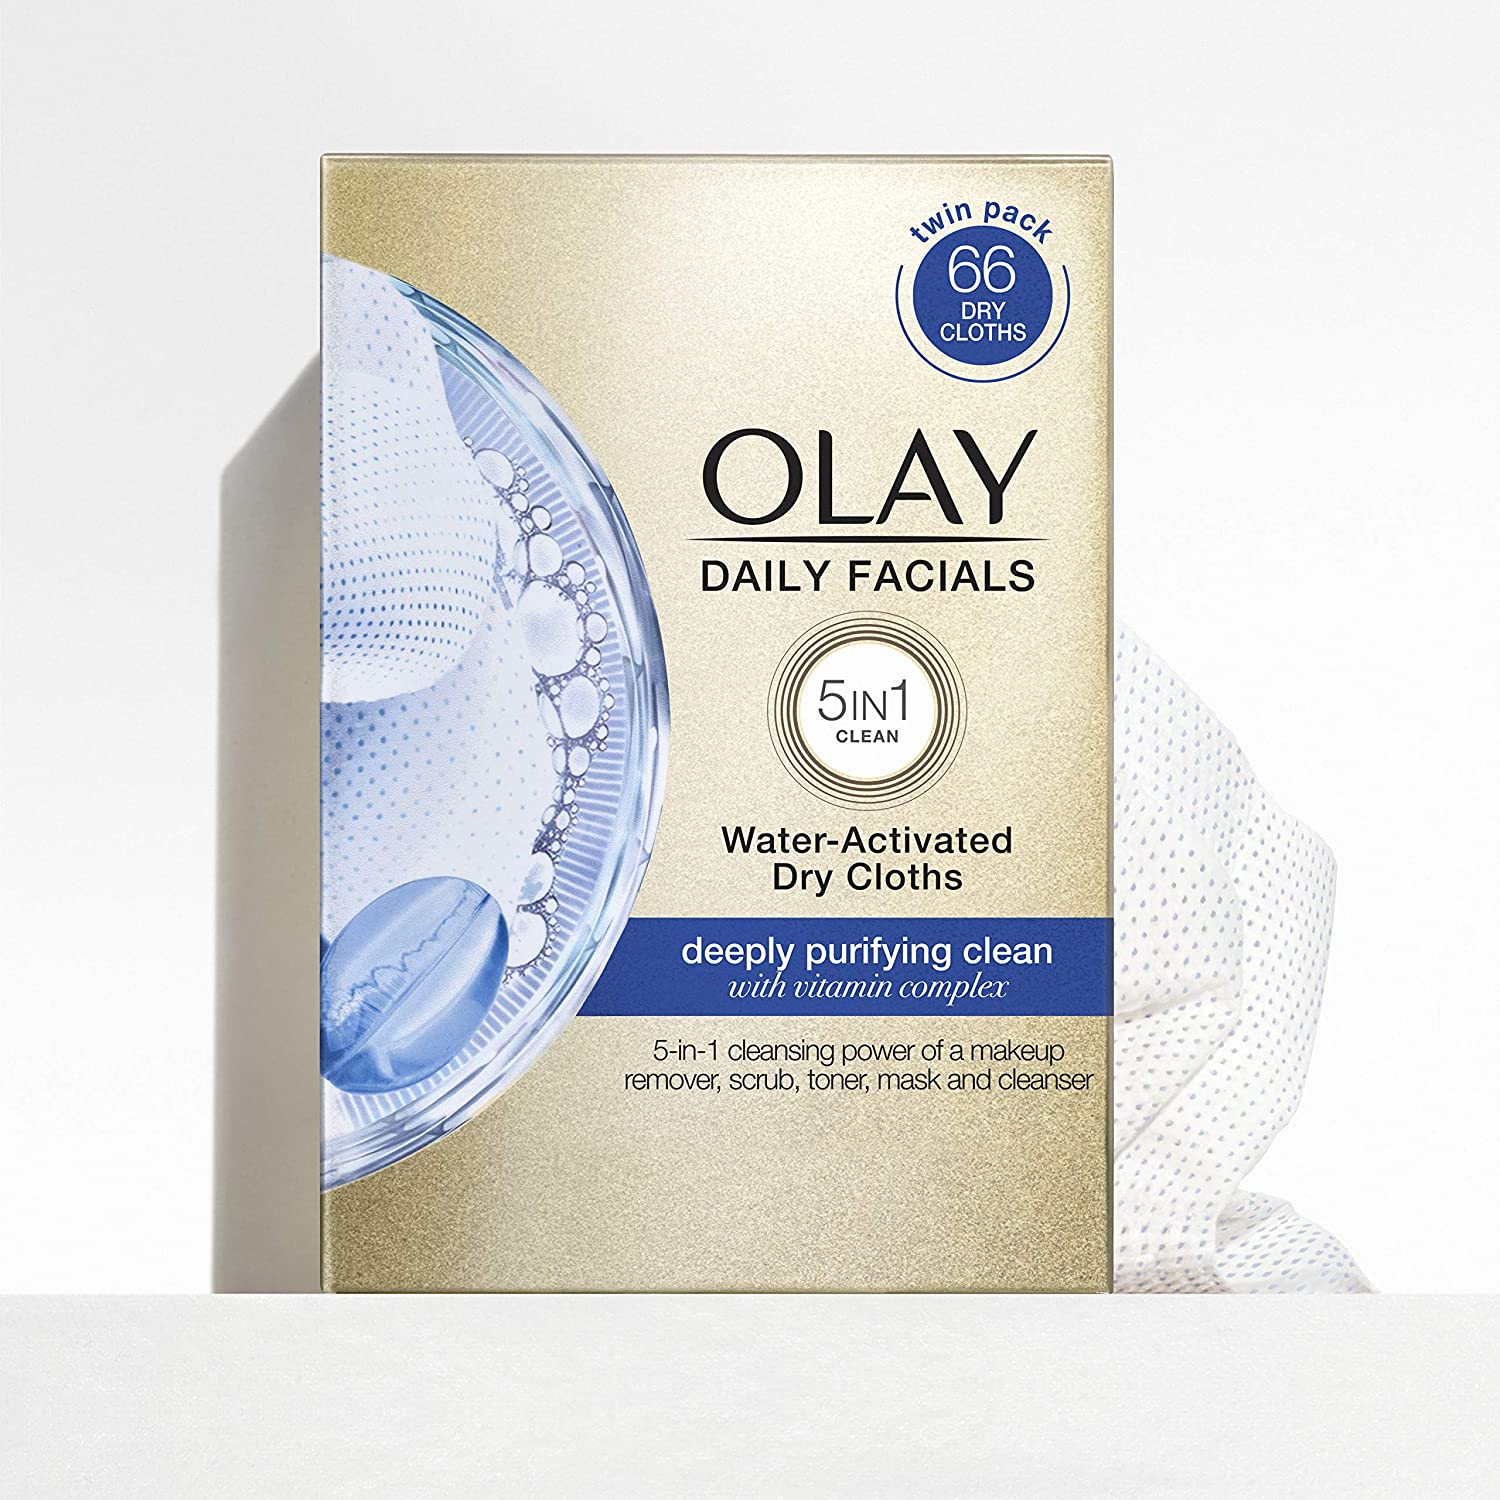 Olay Daily Facials, Deeply Purifying Clean, 5-in-1 Cleansing Wipes with Power of a Makeup Remover, Scrub, Toner, Mask and Cleanser, 66 count: Beauty